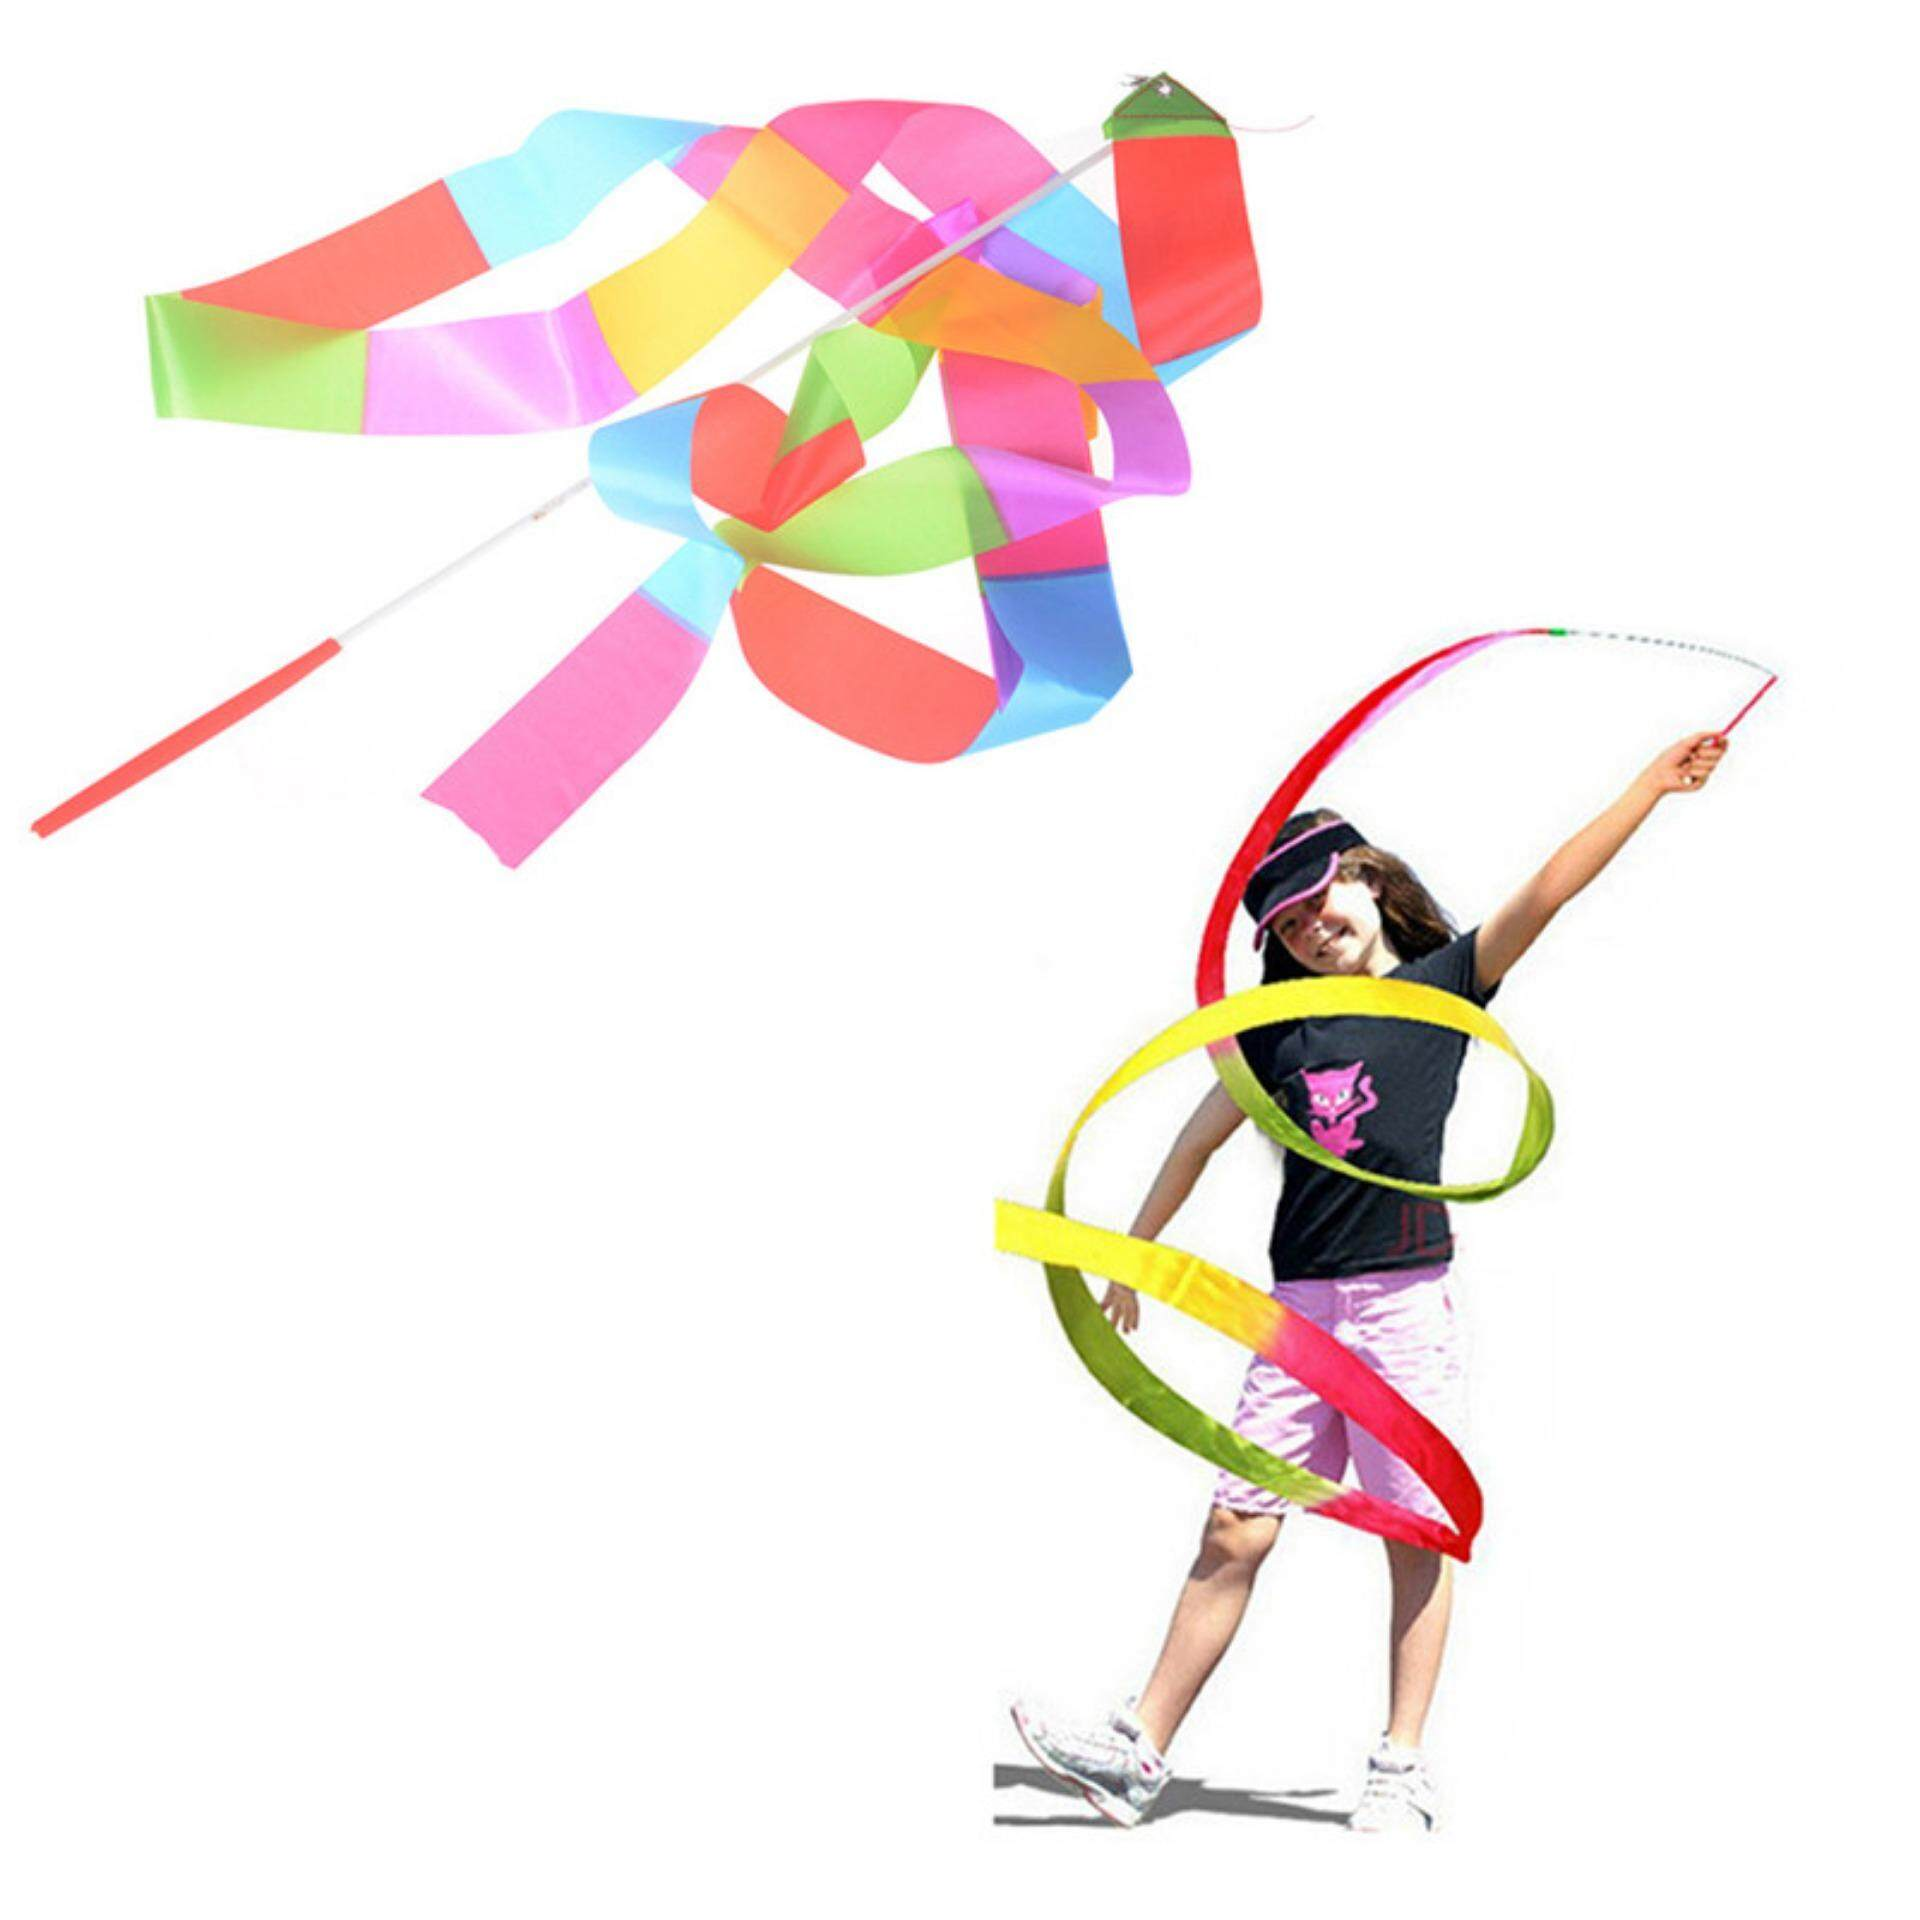 Fashion Colorful 4m Ribbon Gymnastics Dance Dancer Toy Kid Outdoor Sport Toy By Gorgeous Road.